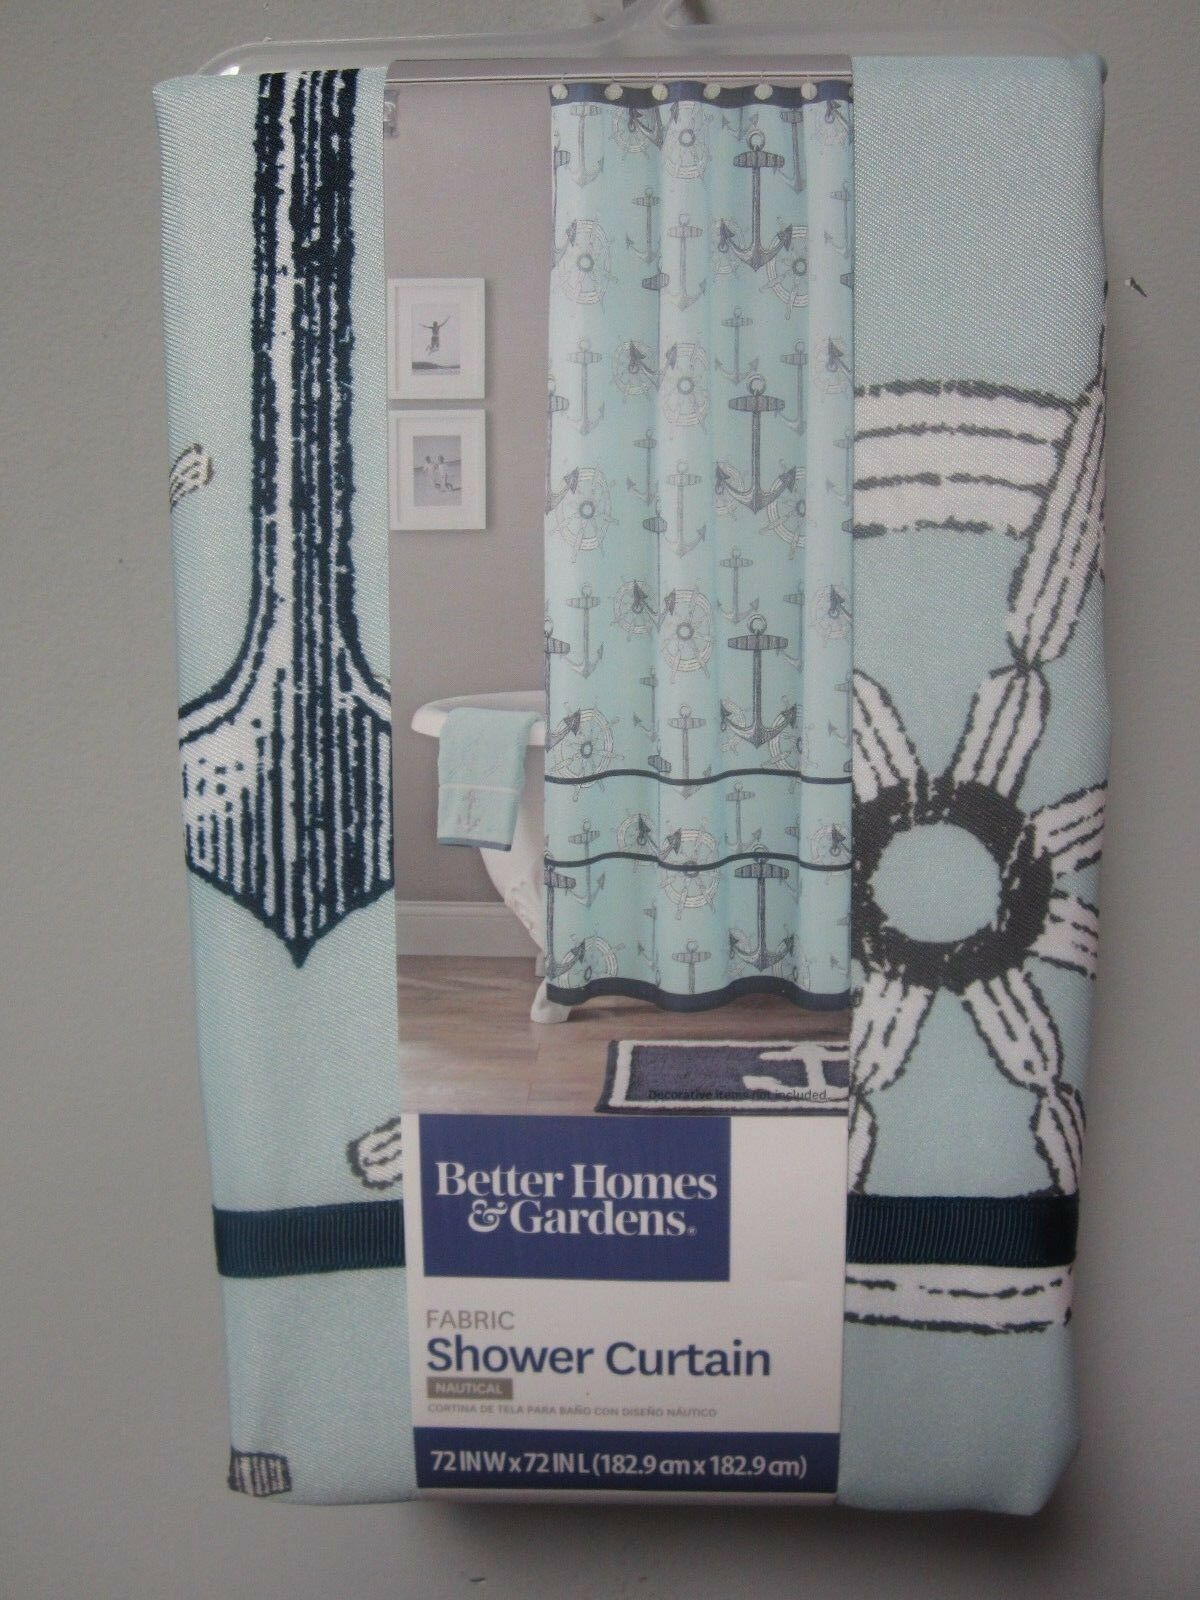 Better Homes Gardens Nautical Shower Curtain Fabric Size 72 In L X 72 In W For Sale